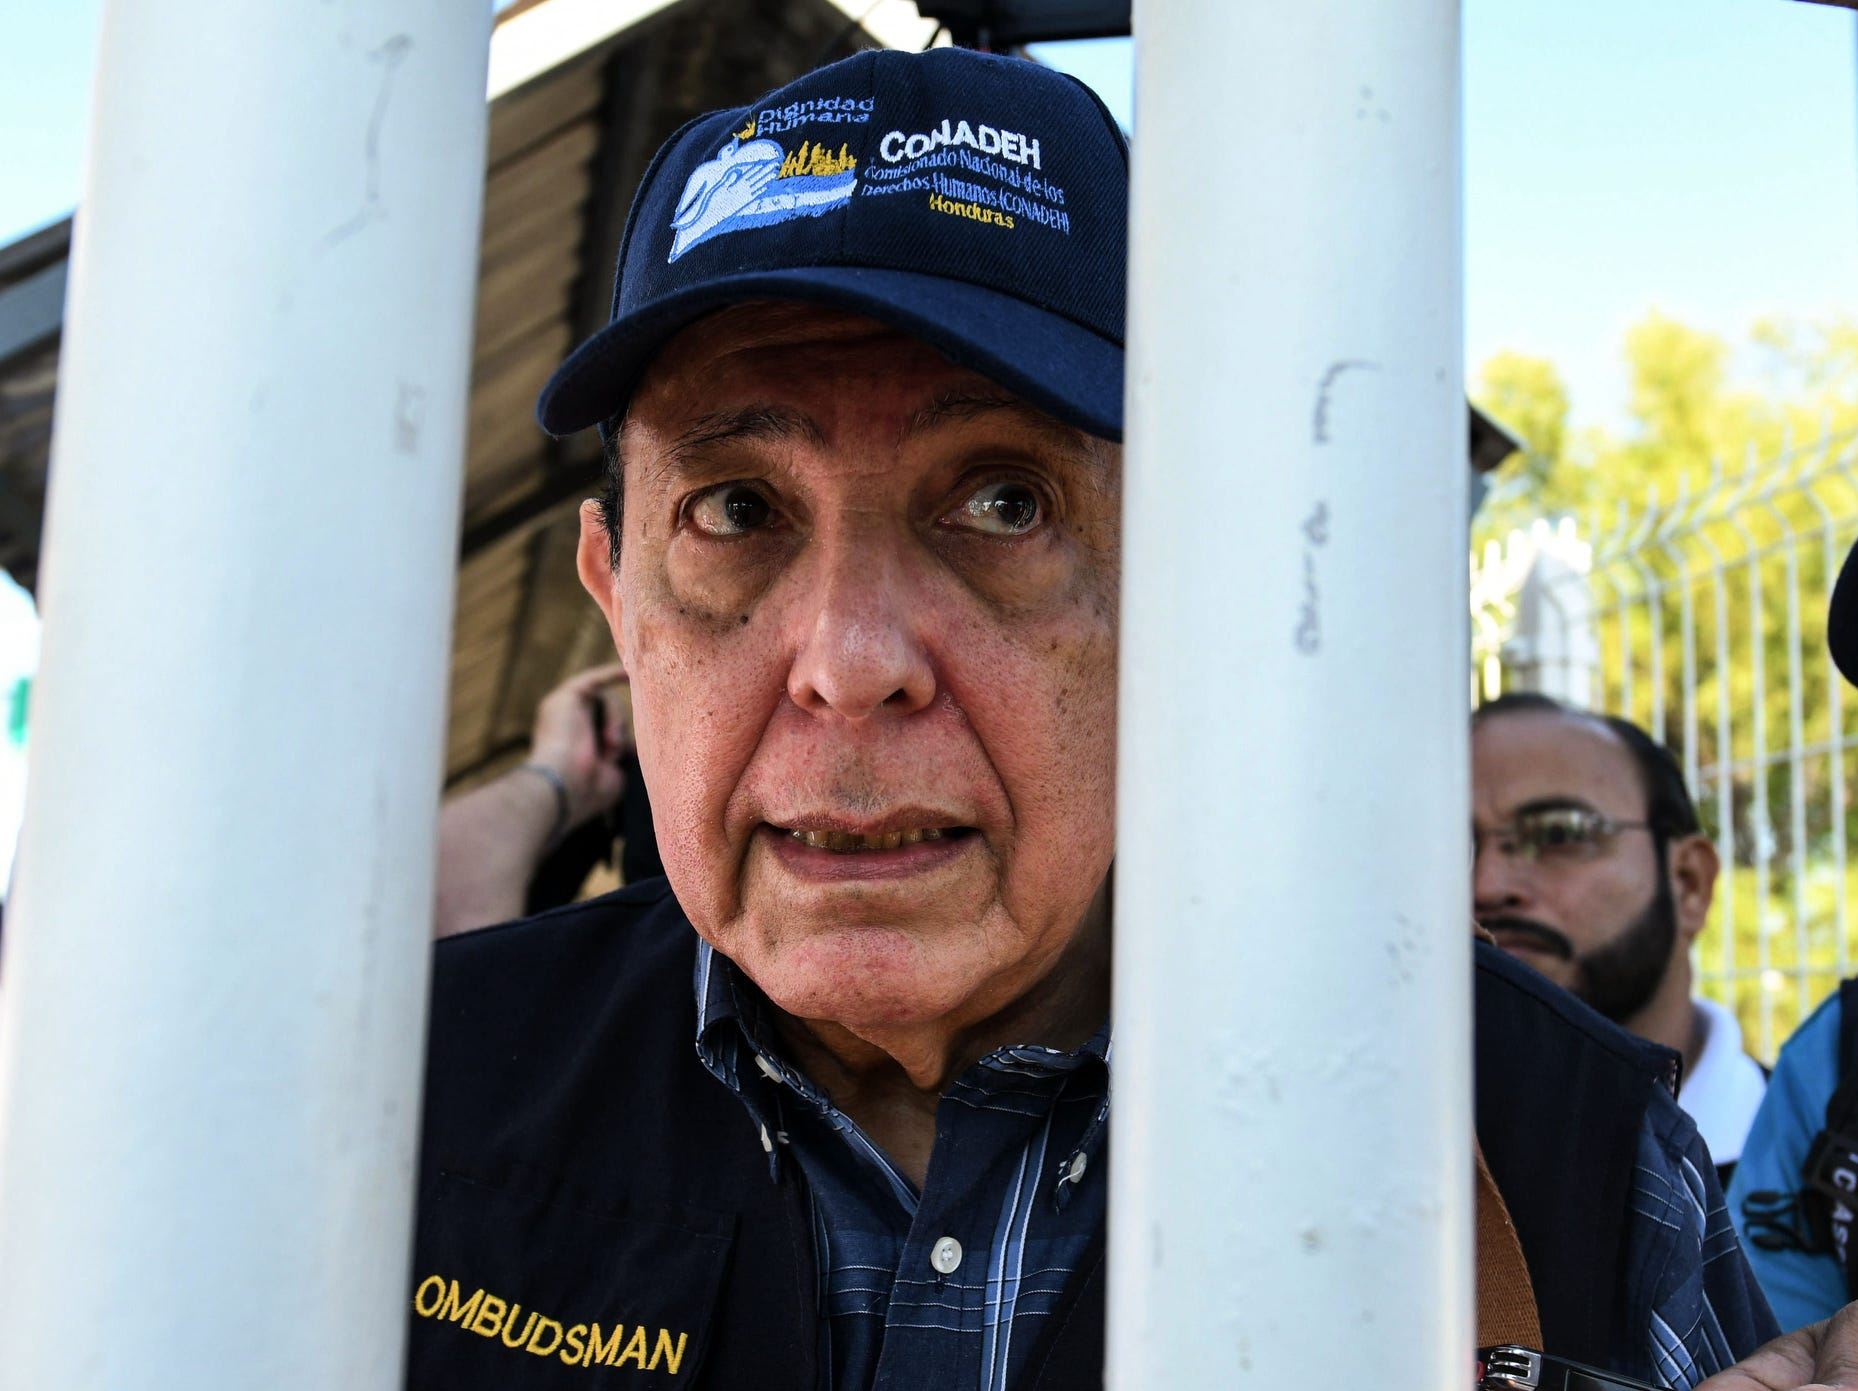 Honduras' Human Rights National Commissioner Roberto Herrera is pictured after being briefed on the situation regarding the recent passage of a massive caravan of Honduran migrants, at the Guatemala-Mexico border bridge, in Ciudad Tecun Uman, Guatemala, on Oct. 23, 2018. Late Monday, Mexico allowed another group of about 400 migrants to enter the country after they spent days packed onto a bridge over the Suchiate River, which forms Mexico's southern border with Guatemala.